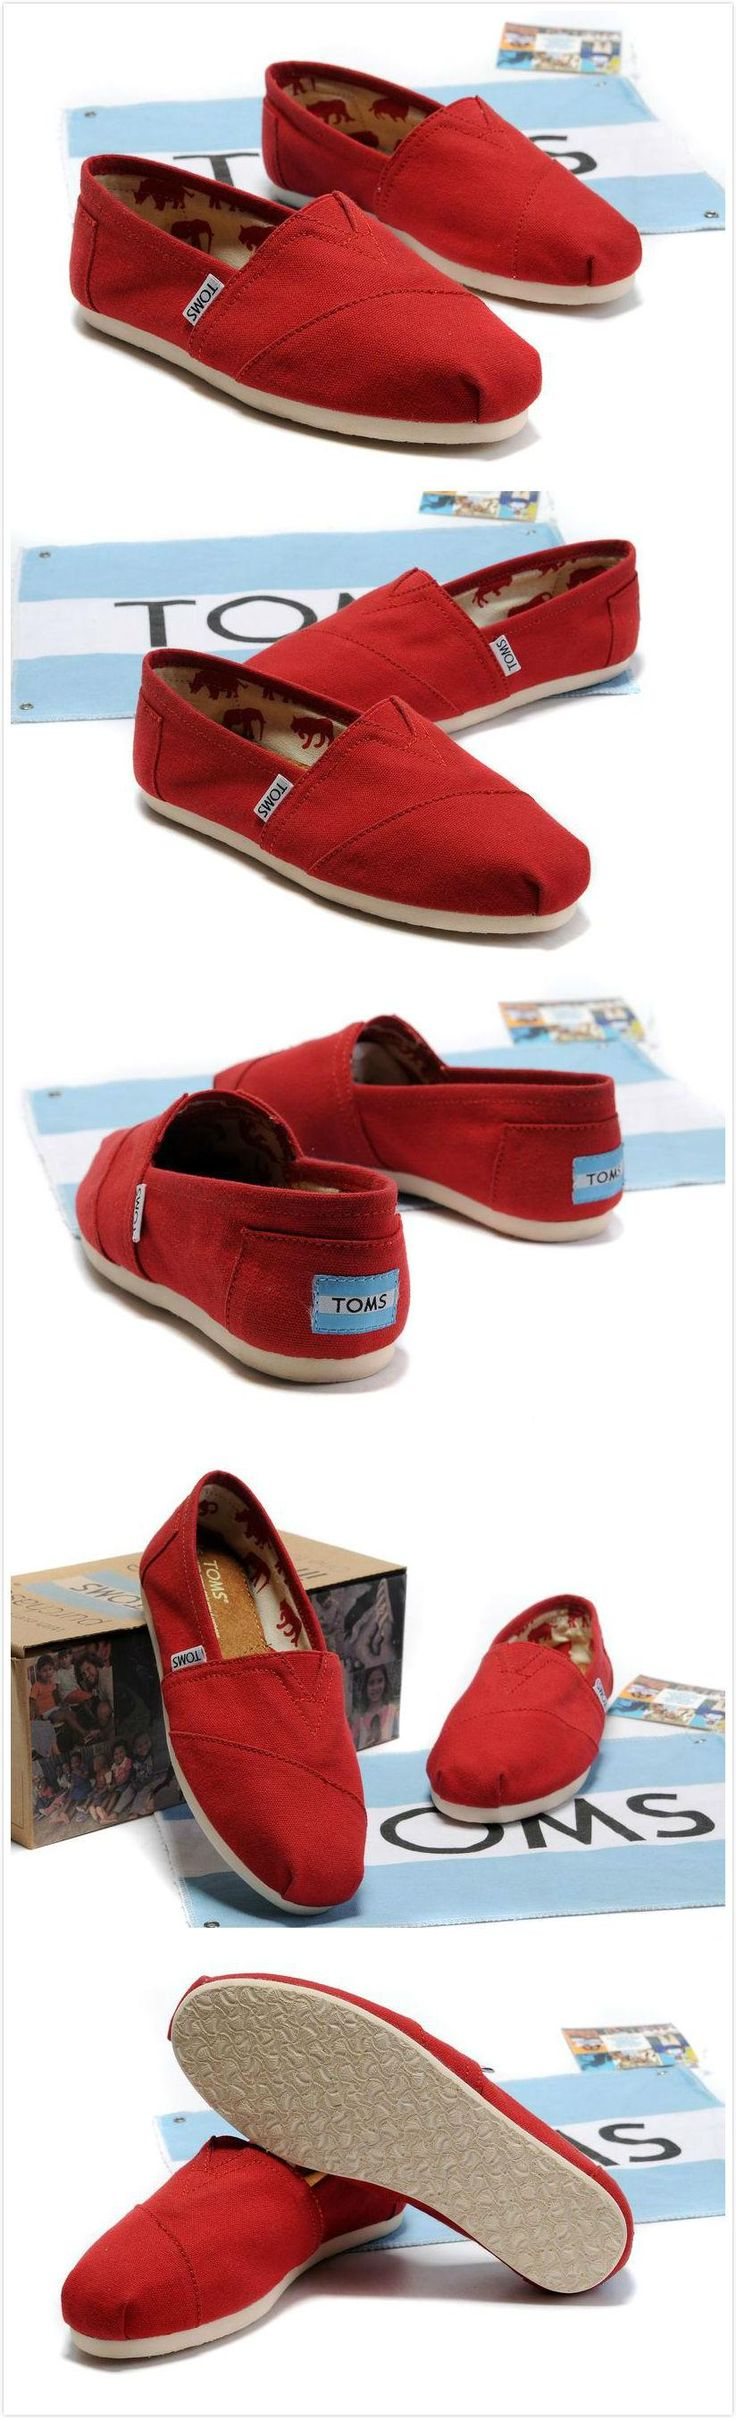 Website For Discount TOMS Shoes! Super Cheap! Only $16.89